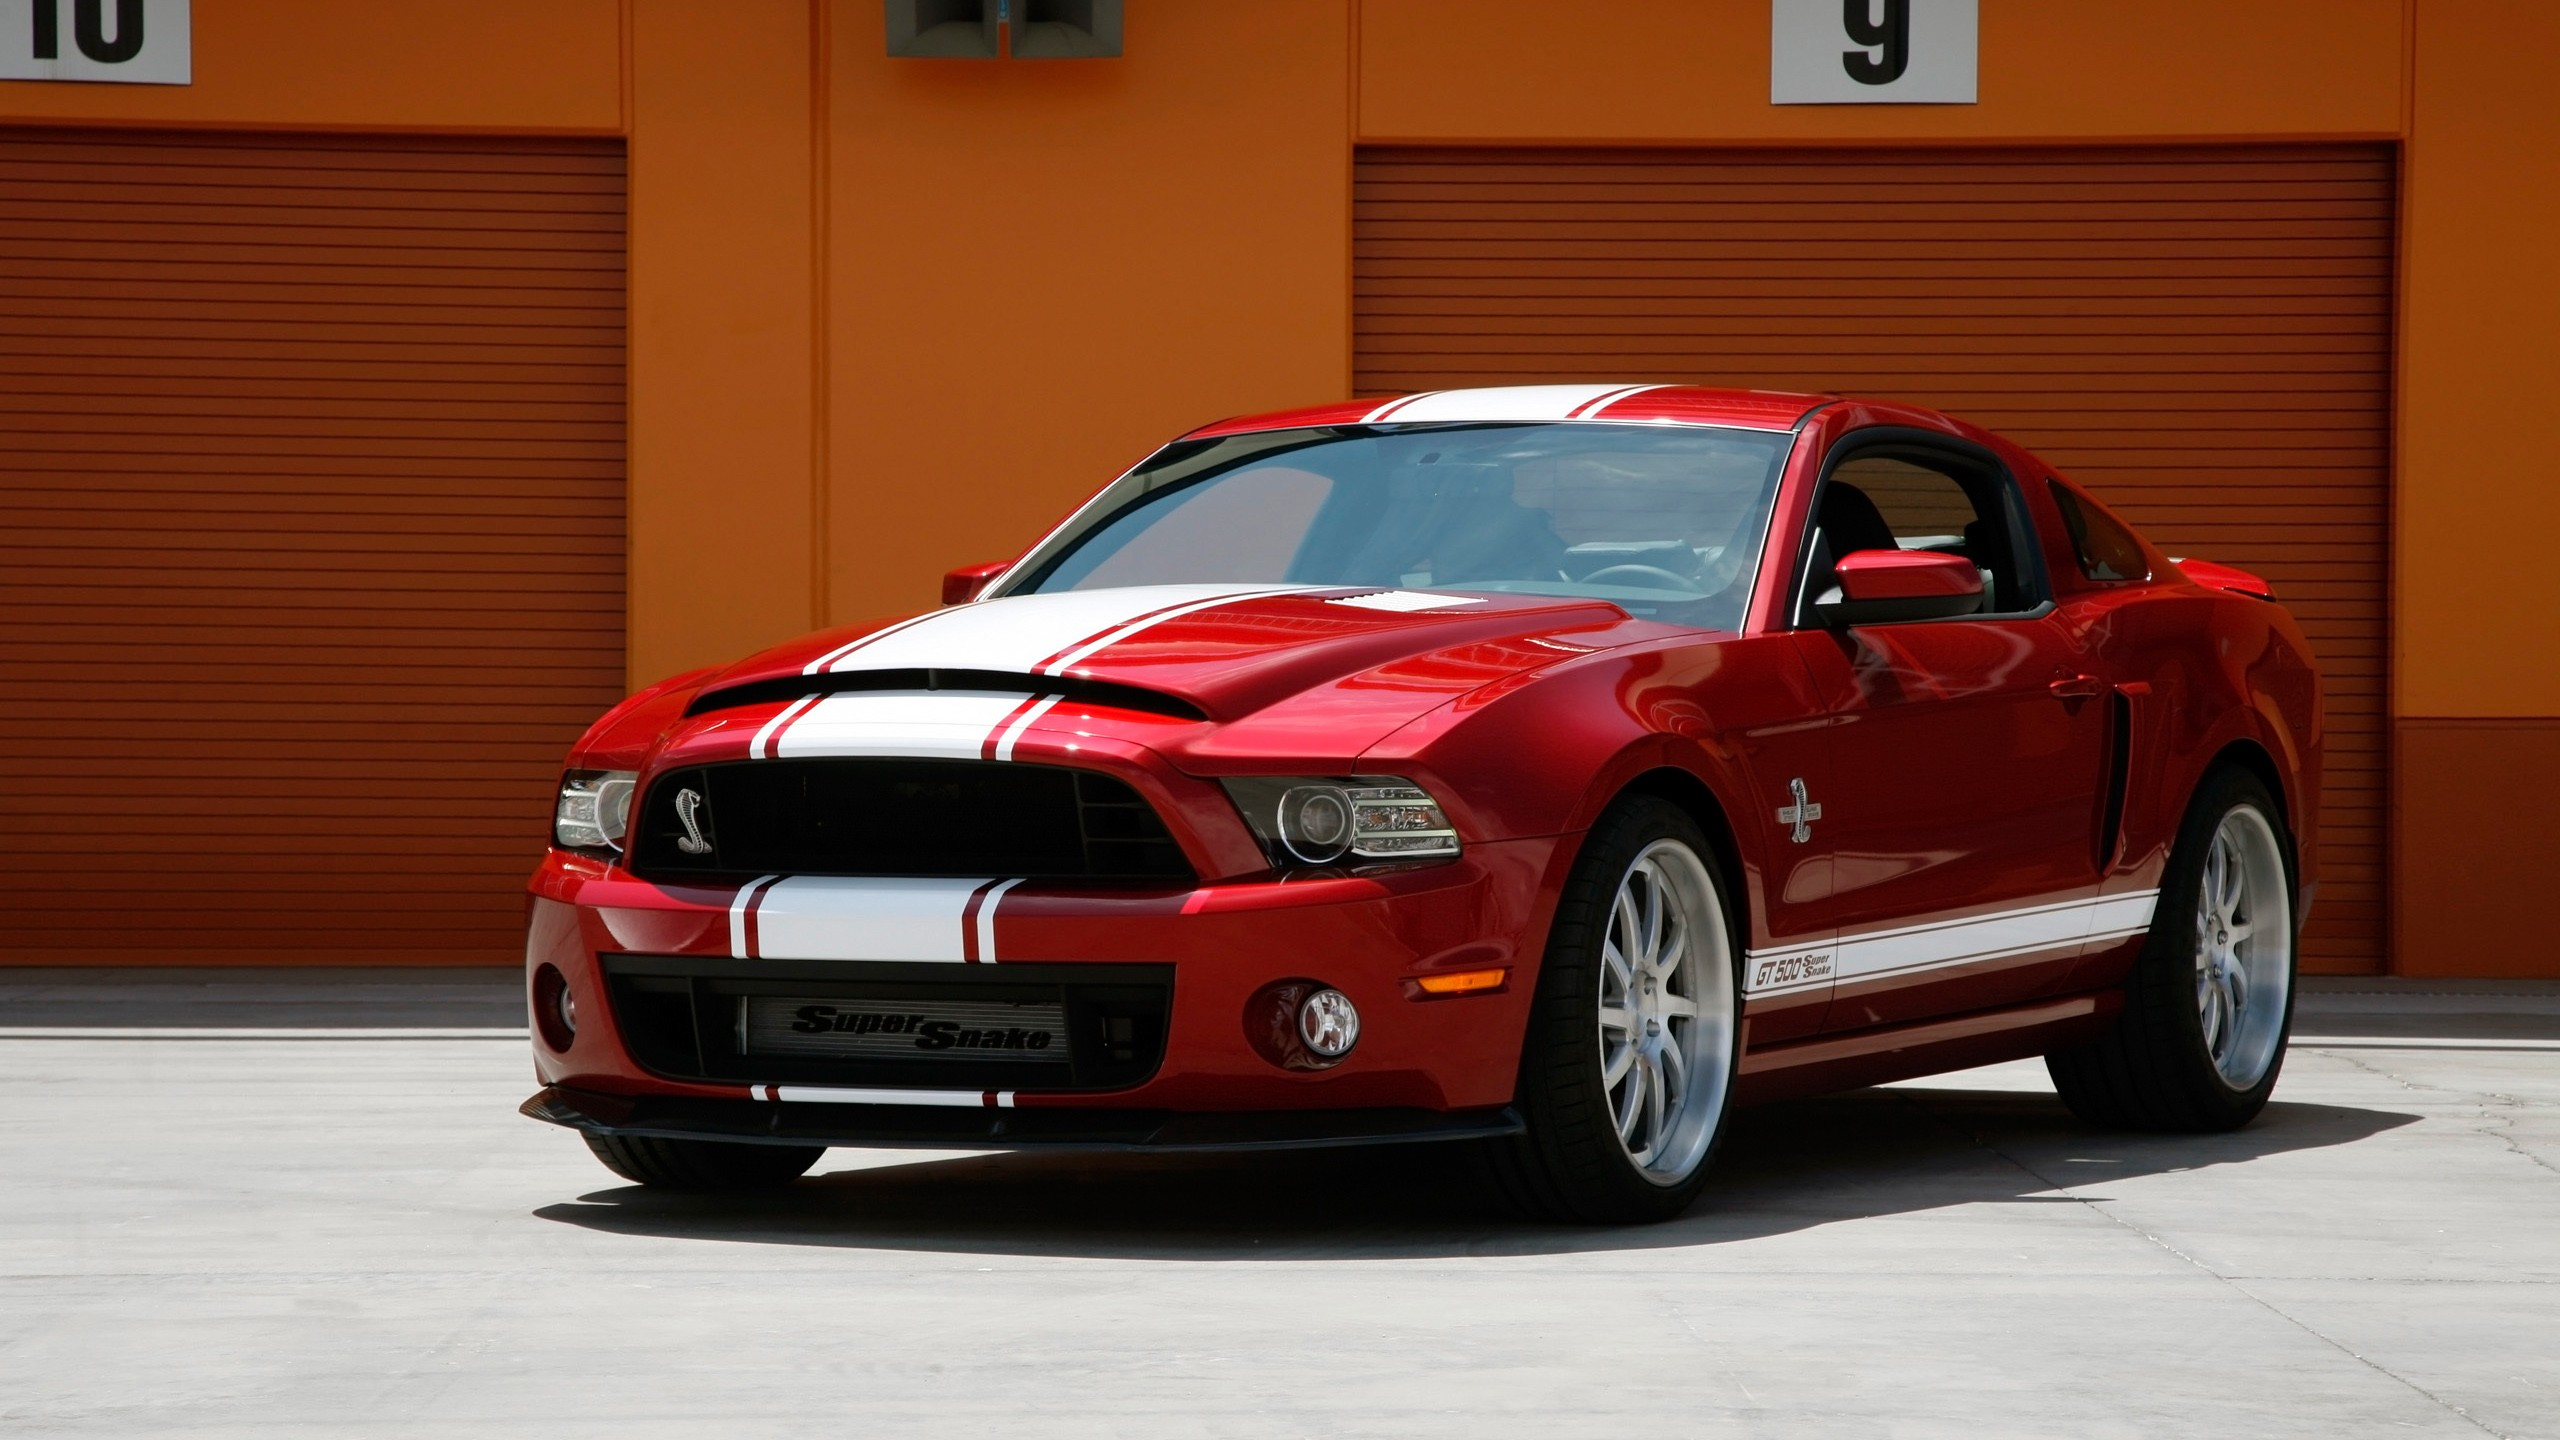 2014 Shelby Gt500 Super Snake Wallpaper Hd Car